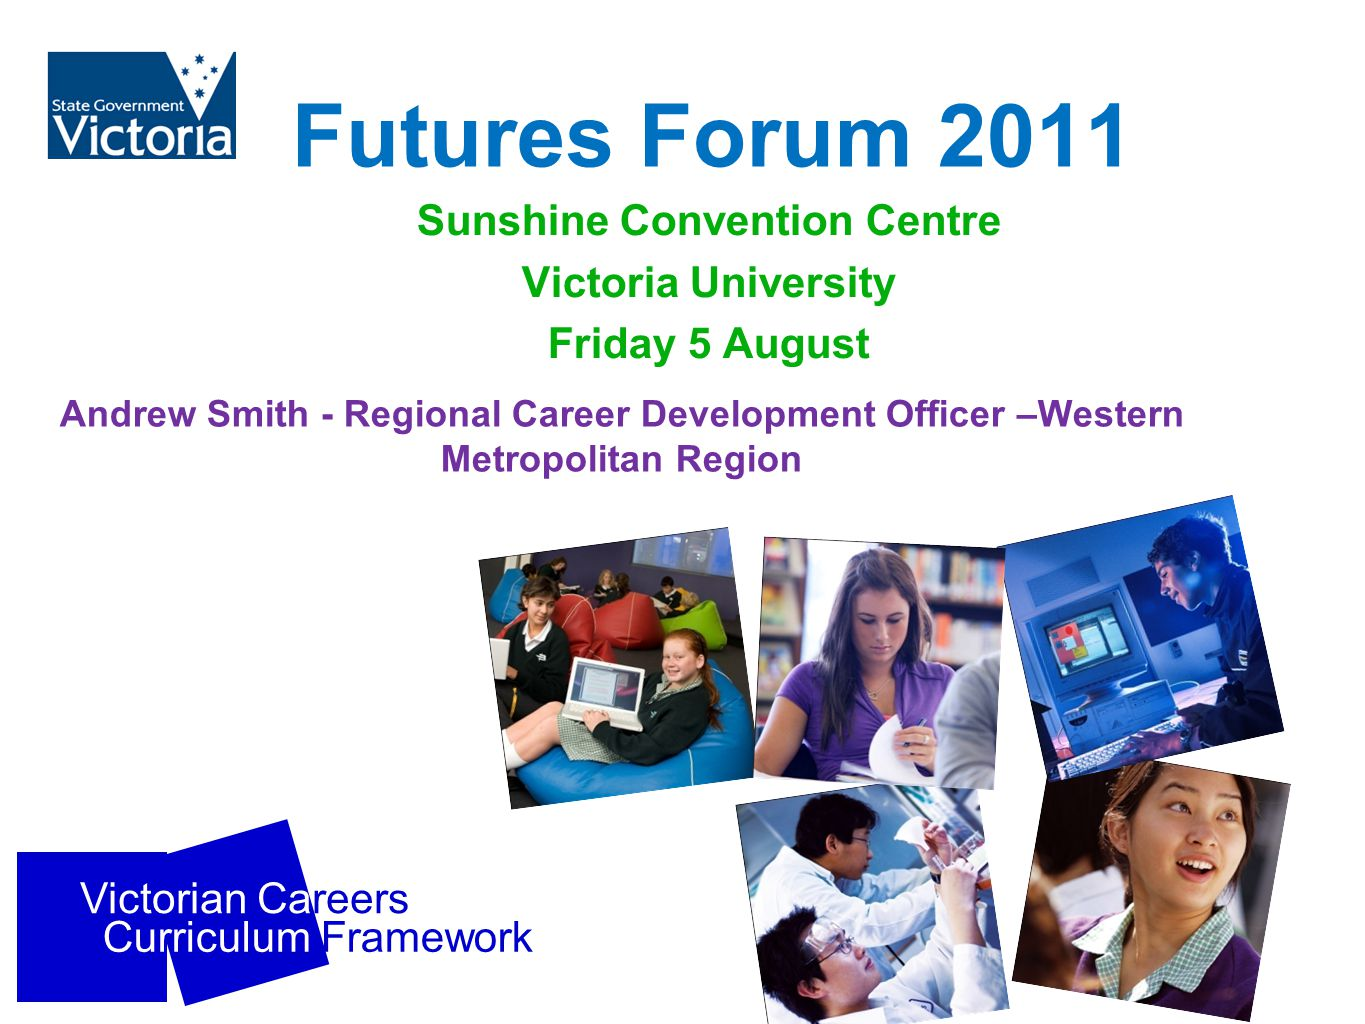 Curriculum Framework Victorian Careers Did You Know? http://www.youtube.com/watch?v=d8W1WuxGniE